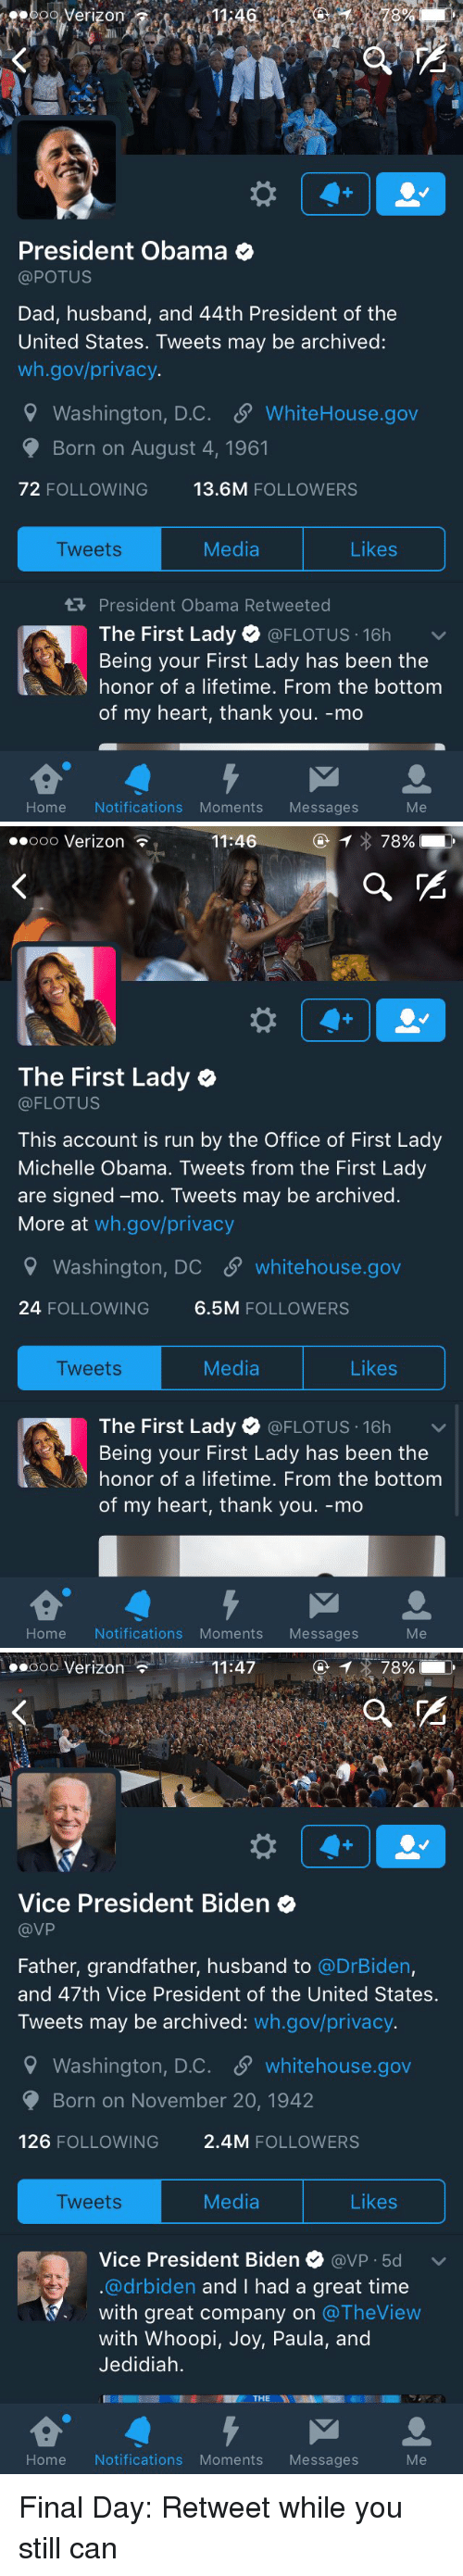 Grandfathered: Verizon  President Obama  @POTUS  Dad, husband, and 44th President of the  United States. Tweets may be archived:  wh.gov/privacy.  9 Washington, D.C. SP WhiteHouse.gov  Born on August 4, 1961  72 FOLLOWING  13.6M  FOLLOWERS  Likes  Media  Tweets  President Obama Retweeted  The First Lady  @FLOTUS 16h  v  Being your First Lady has been the  honor of a lifetime. From the bottom  of my heart, thank you. -mo  Home Notifications Moments Messages   Ooo Verizon  11:46  78%  The First Lady  (a FLOTUS  This account is run by the Office of First Lady  Michelle Obama. Tweets from the First Lady  are signed -mo. Tweets may be archived  More at  wh.gov/privacy  Washington, DC SP whitehouse.gov  24 FOLLOWING  6.5M  FOLLOWERS  Media  Likes  Tweets  The First Lady  (a FLOTUS 16h  v  Being your First Lady has been the  honor of a lifetime. From the bottom  of my heart, thank you. -mo  Home Notifications Moments  Messages   11:47  78%  Ooo Verizon  Vice President Biden  VP  Father, grandfather, husband to  @DrBiden,  and 47th Vice President of the United States.  Tweets may be archived  wh.gov/privacy.  9 Washington, D.C. S whitehouse.gov  Born on November 20, 1942  126  FOLLOWING  2.4M FOLLOWERS  Media  Likes  Tweets  Vice President Biden  avP 5d v  @drbiden and I had a great time  with great company on  The View  with Whoopi  Joy, Paula, and  Jedidiah.  THE  NI  Home Notifications Moments Messages Final Day: Retweet while you still can